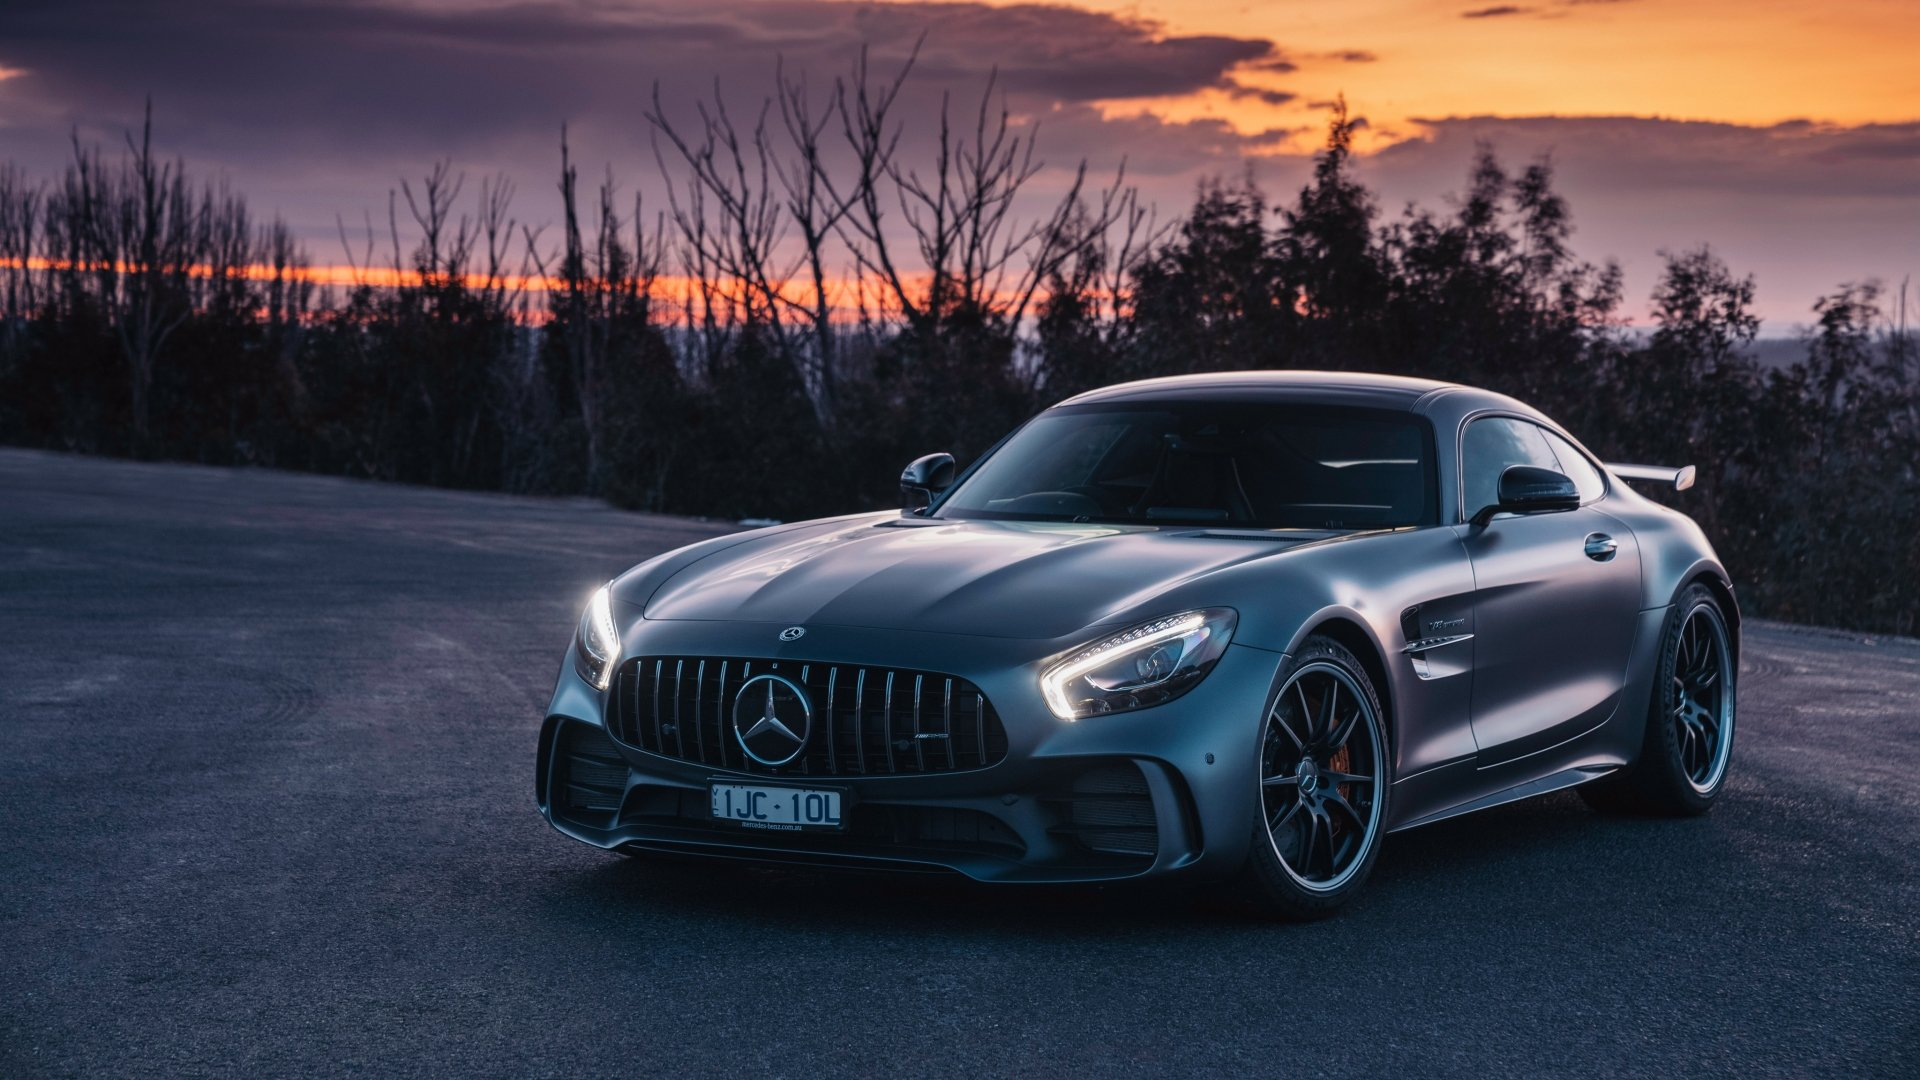 49 4k Ultra Hd Mercedes Amg Gt Wallpapers Background